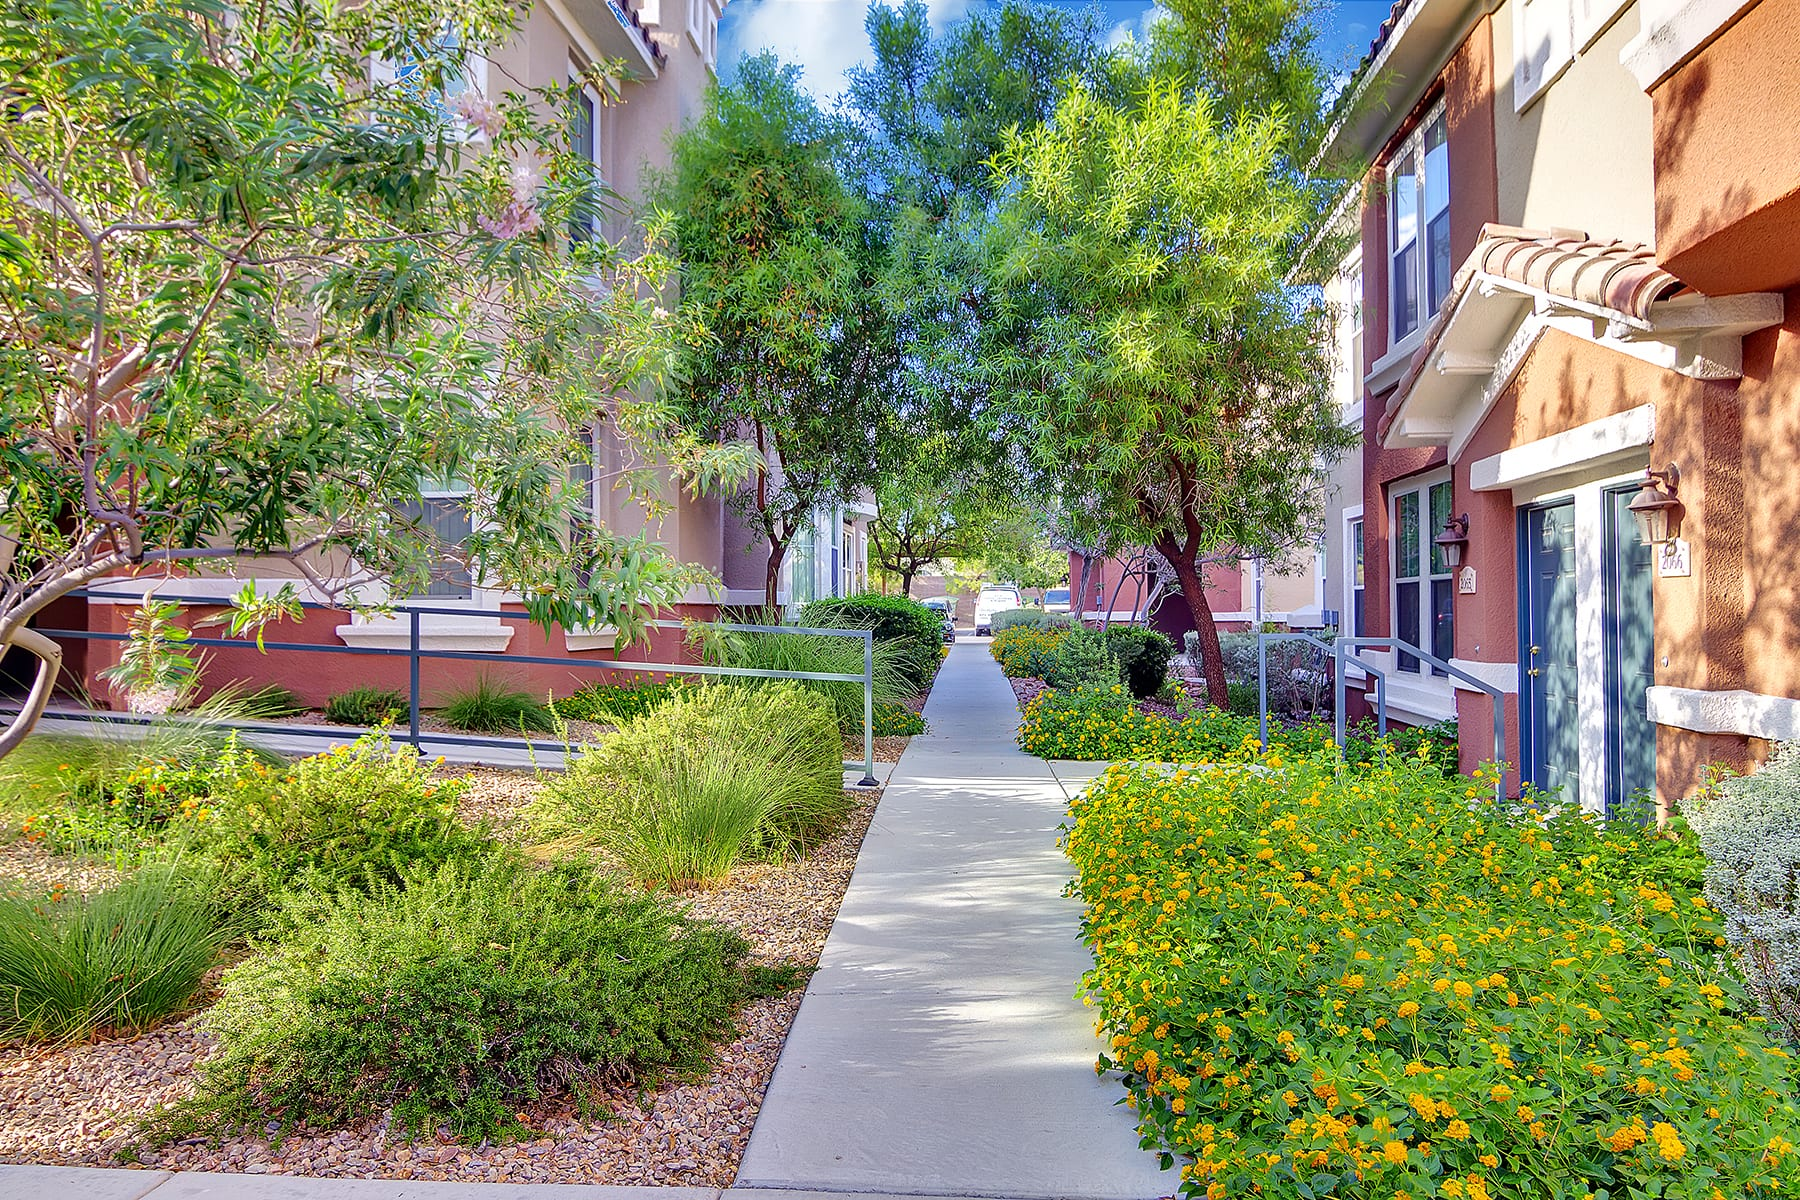 Branches of paved walkways lead to the entrances of Venicia apartment homes through rocky flowerbeds and tall trees.